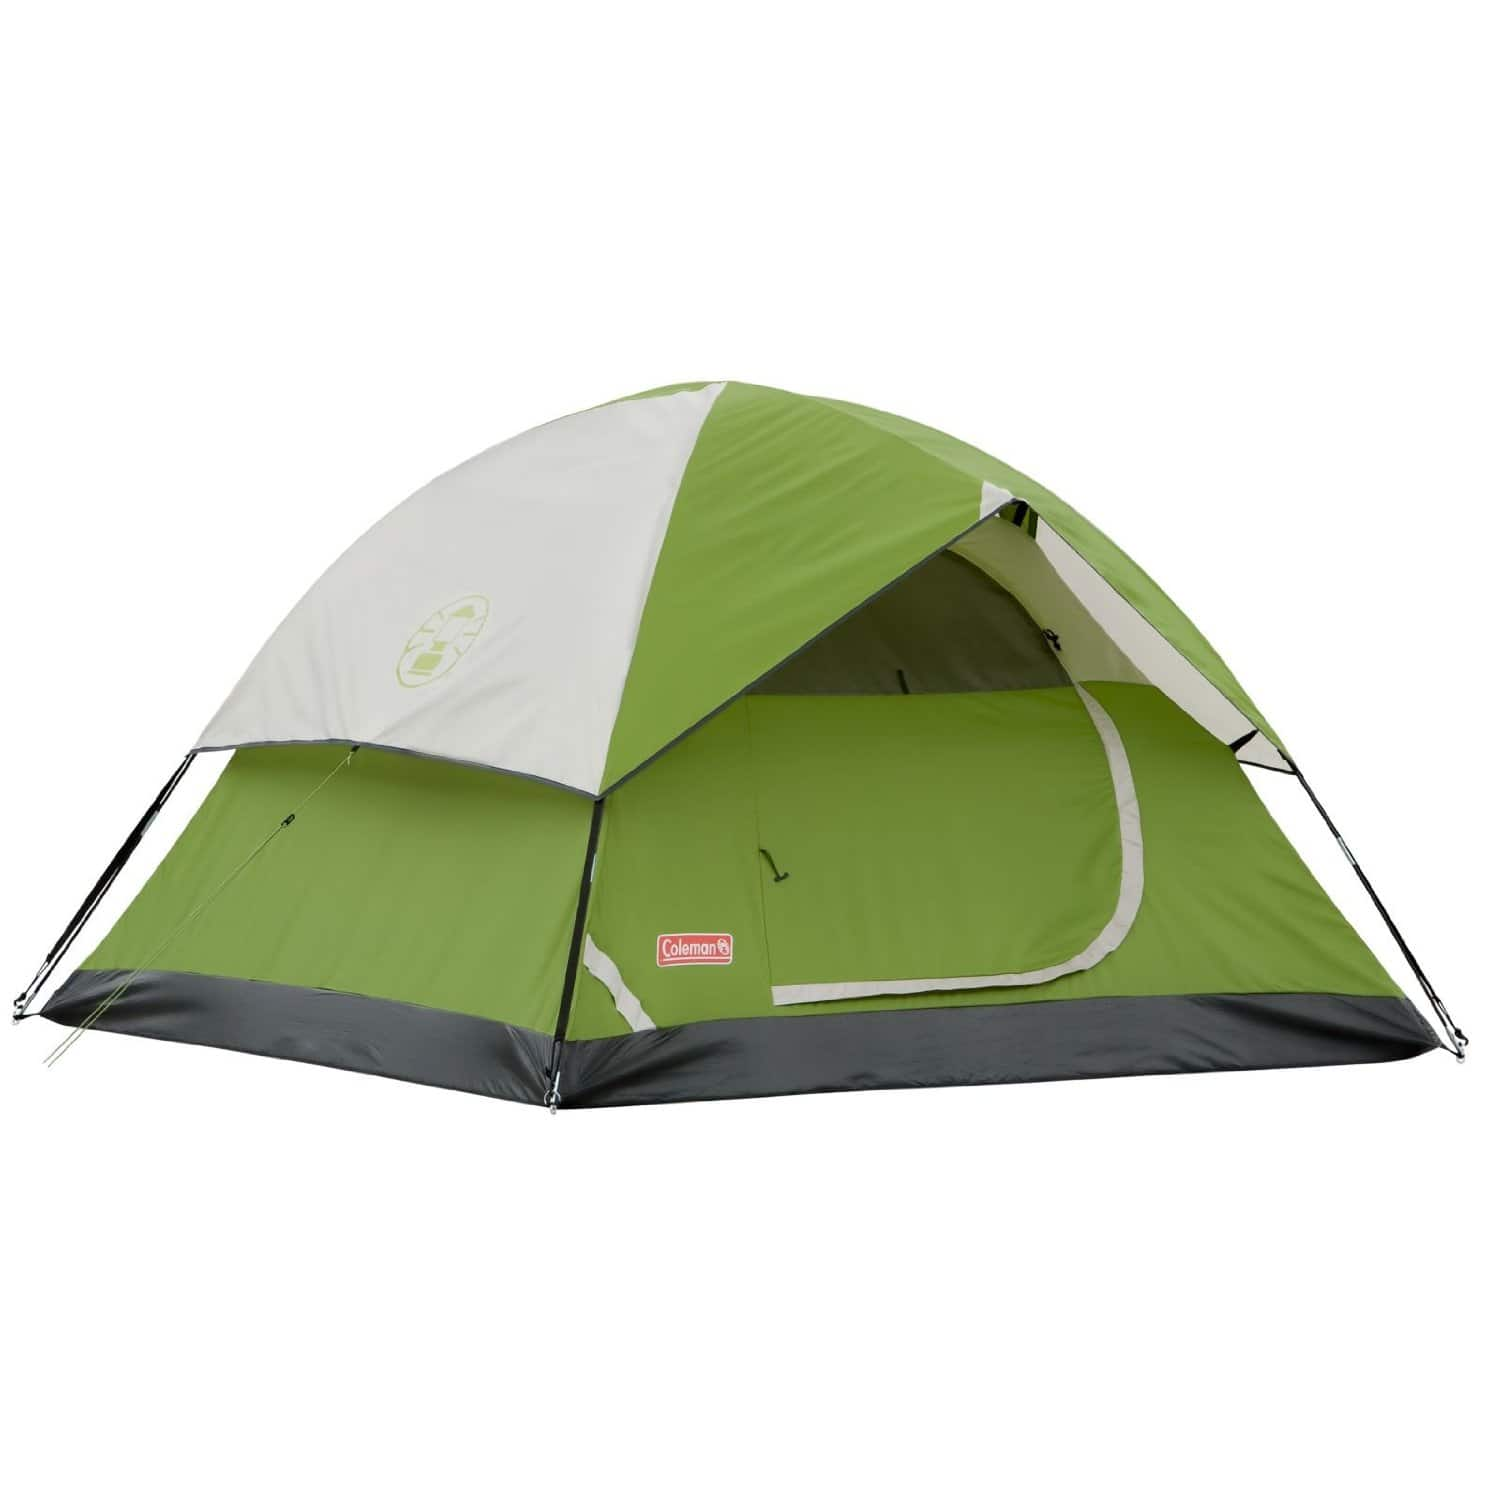 Coleman Sundome 4 person tent $40 with FS at Amazon